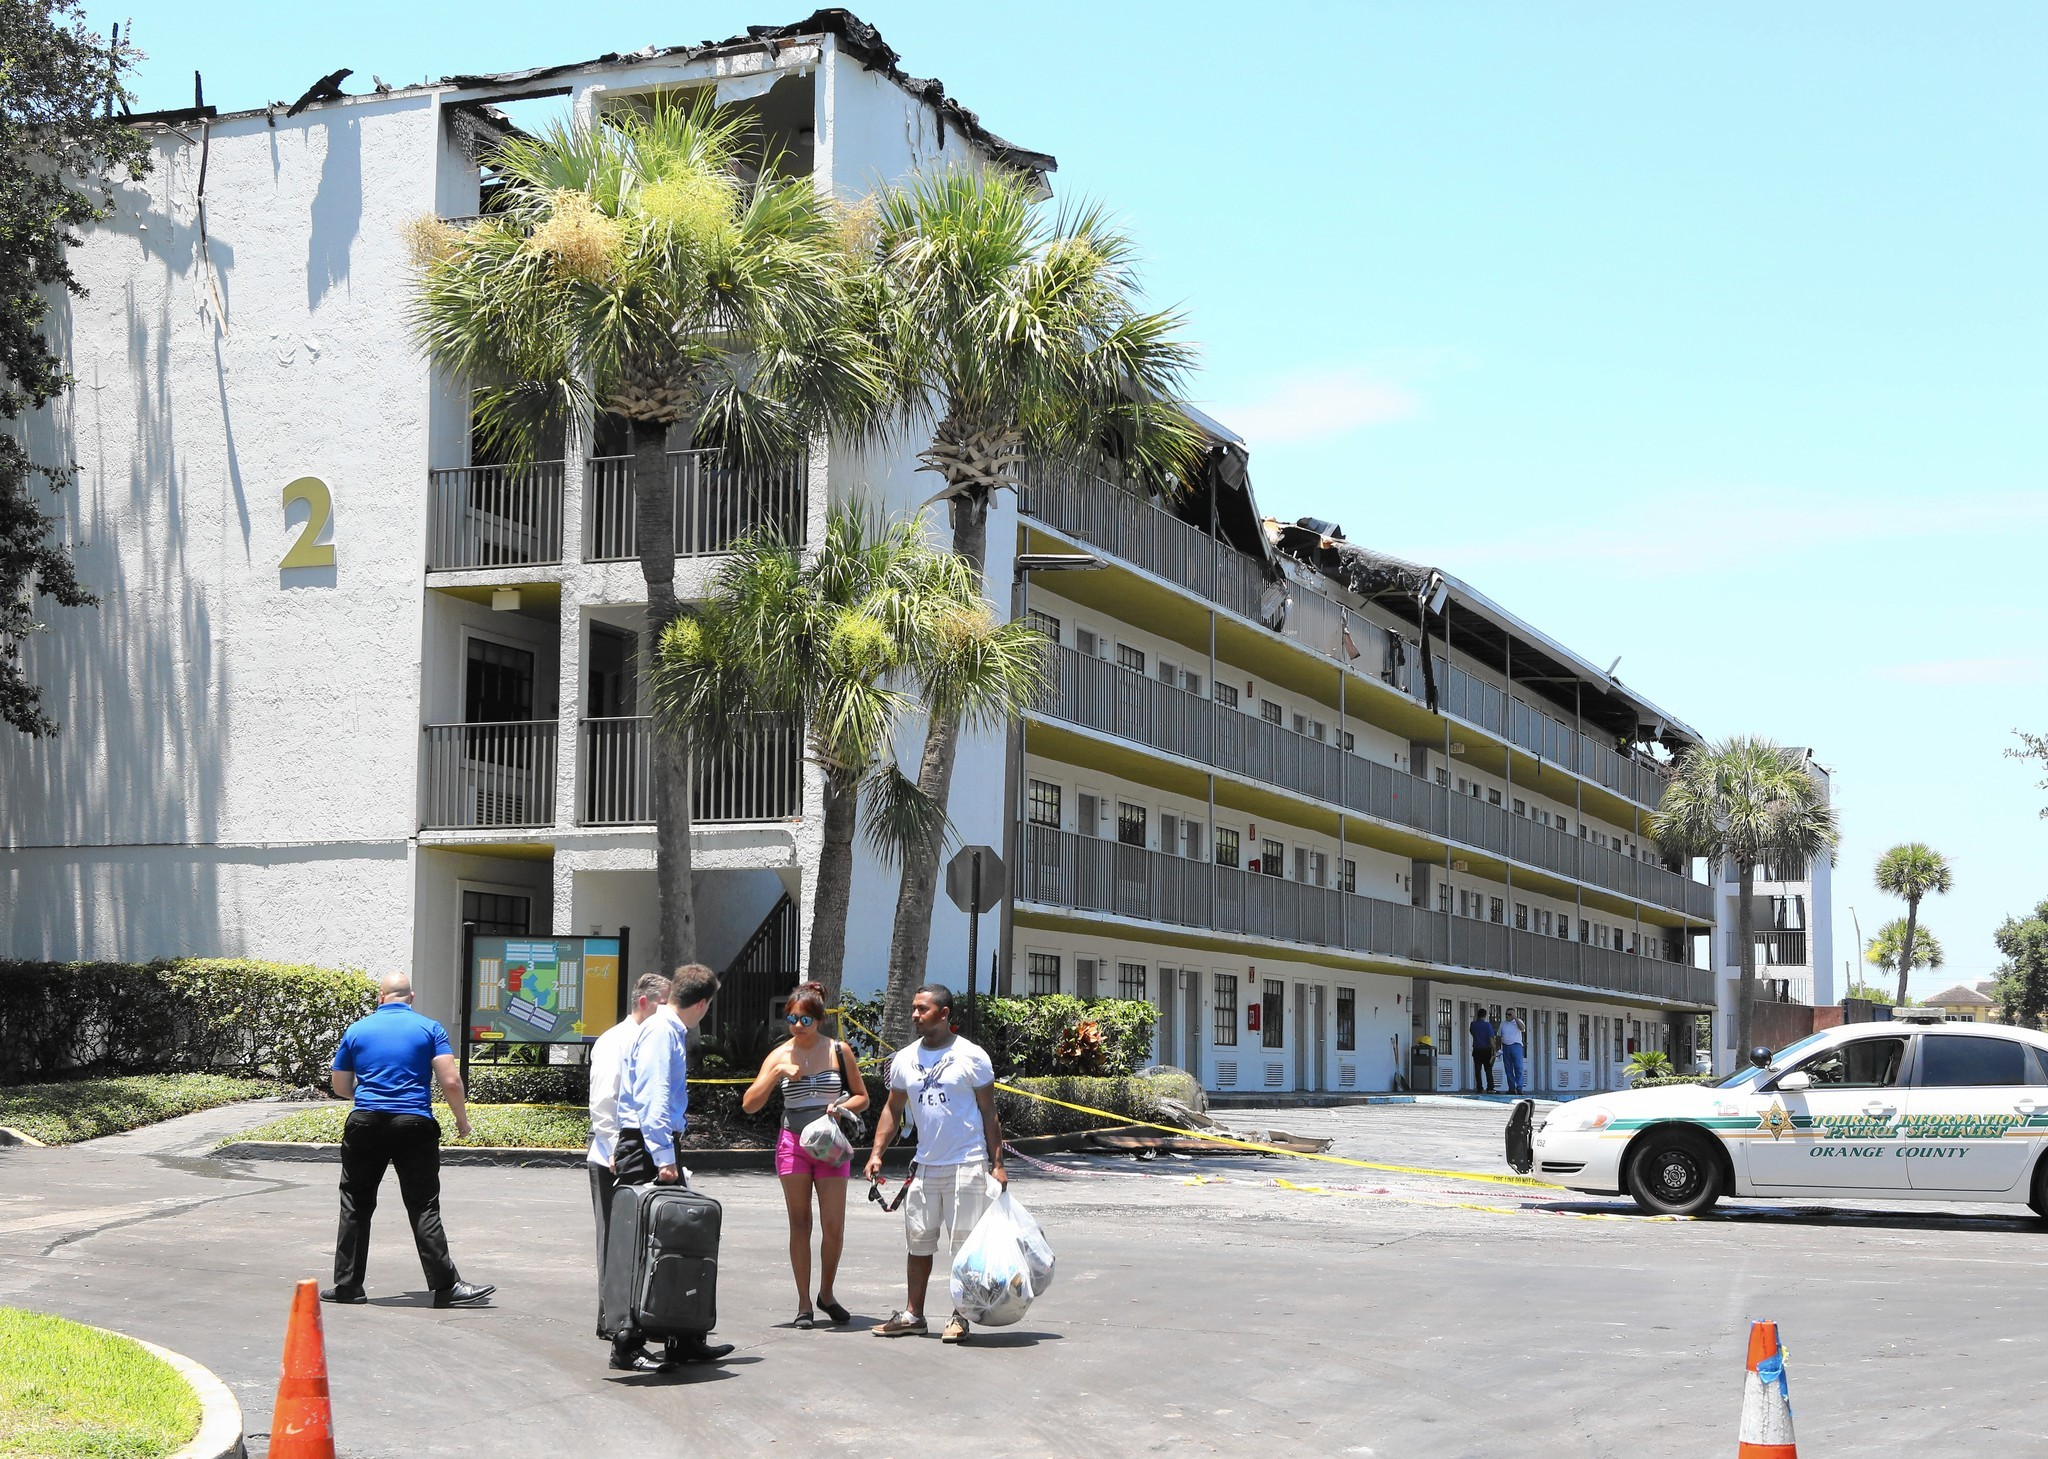 Orlando Hotels Ravaged By Fire Including The Avanti